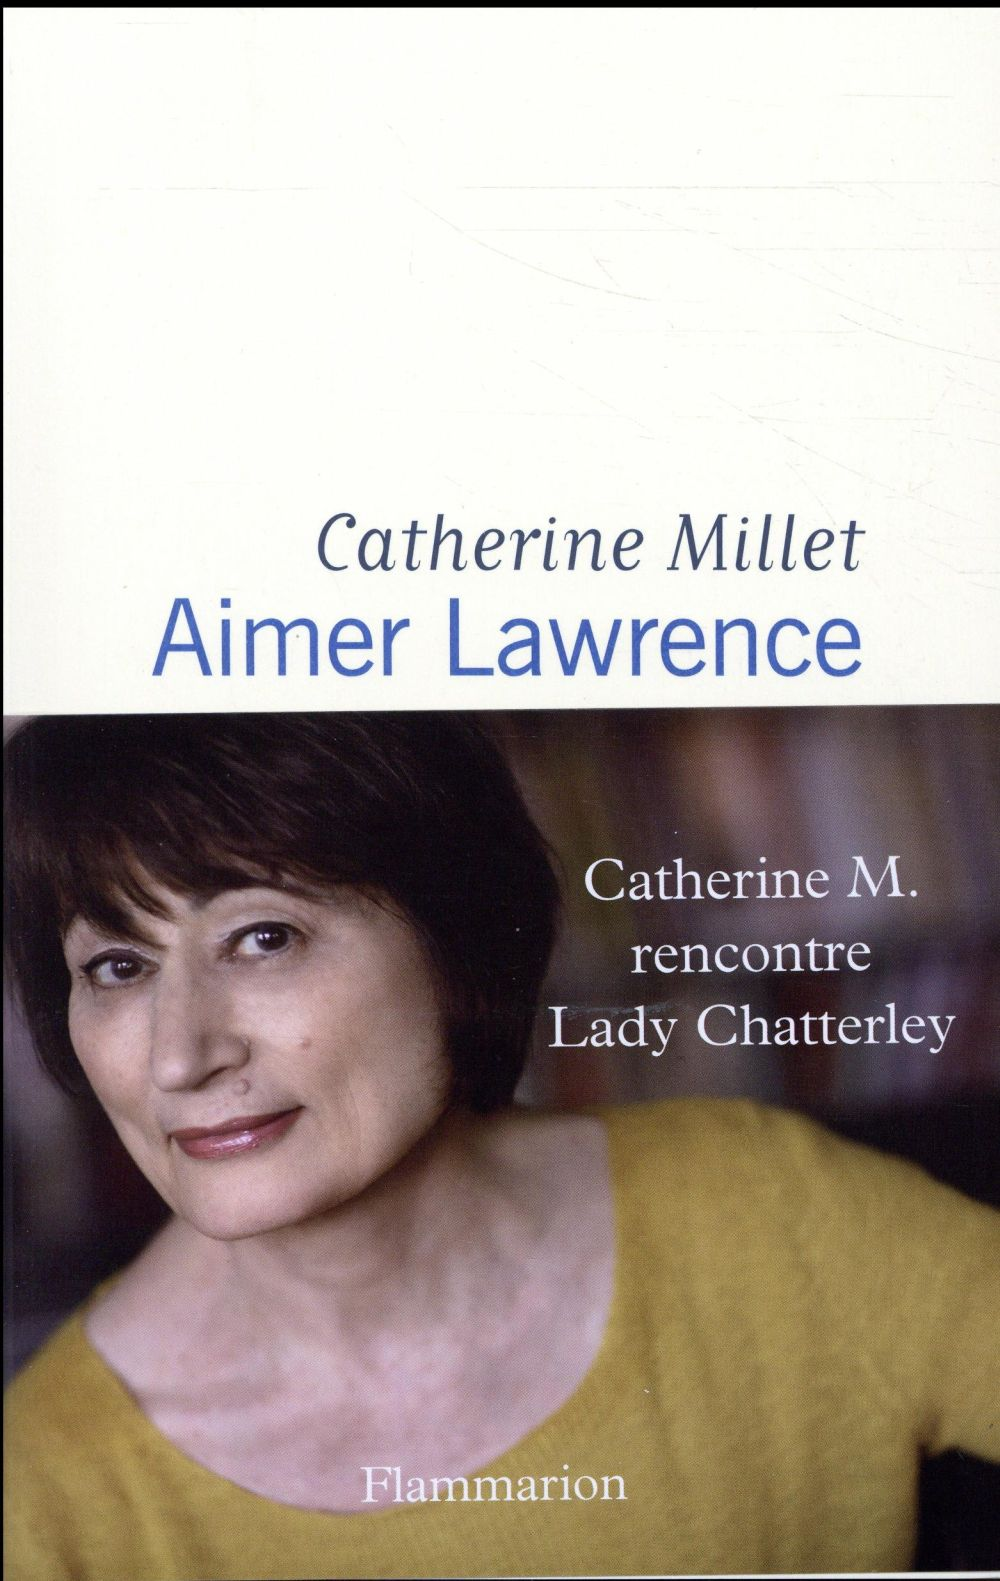 Aimer lawrence ; Catherine M. rencontre Lady Chatterley